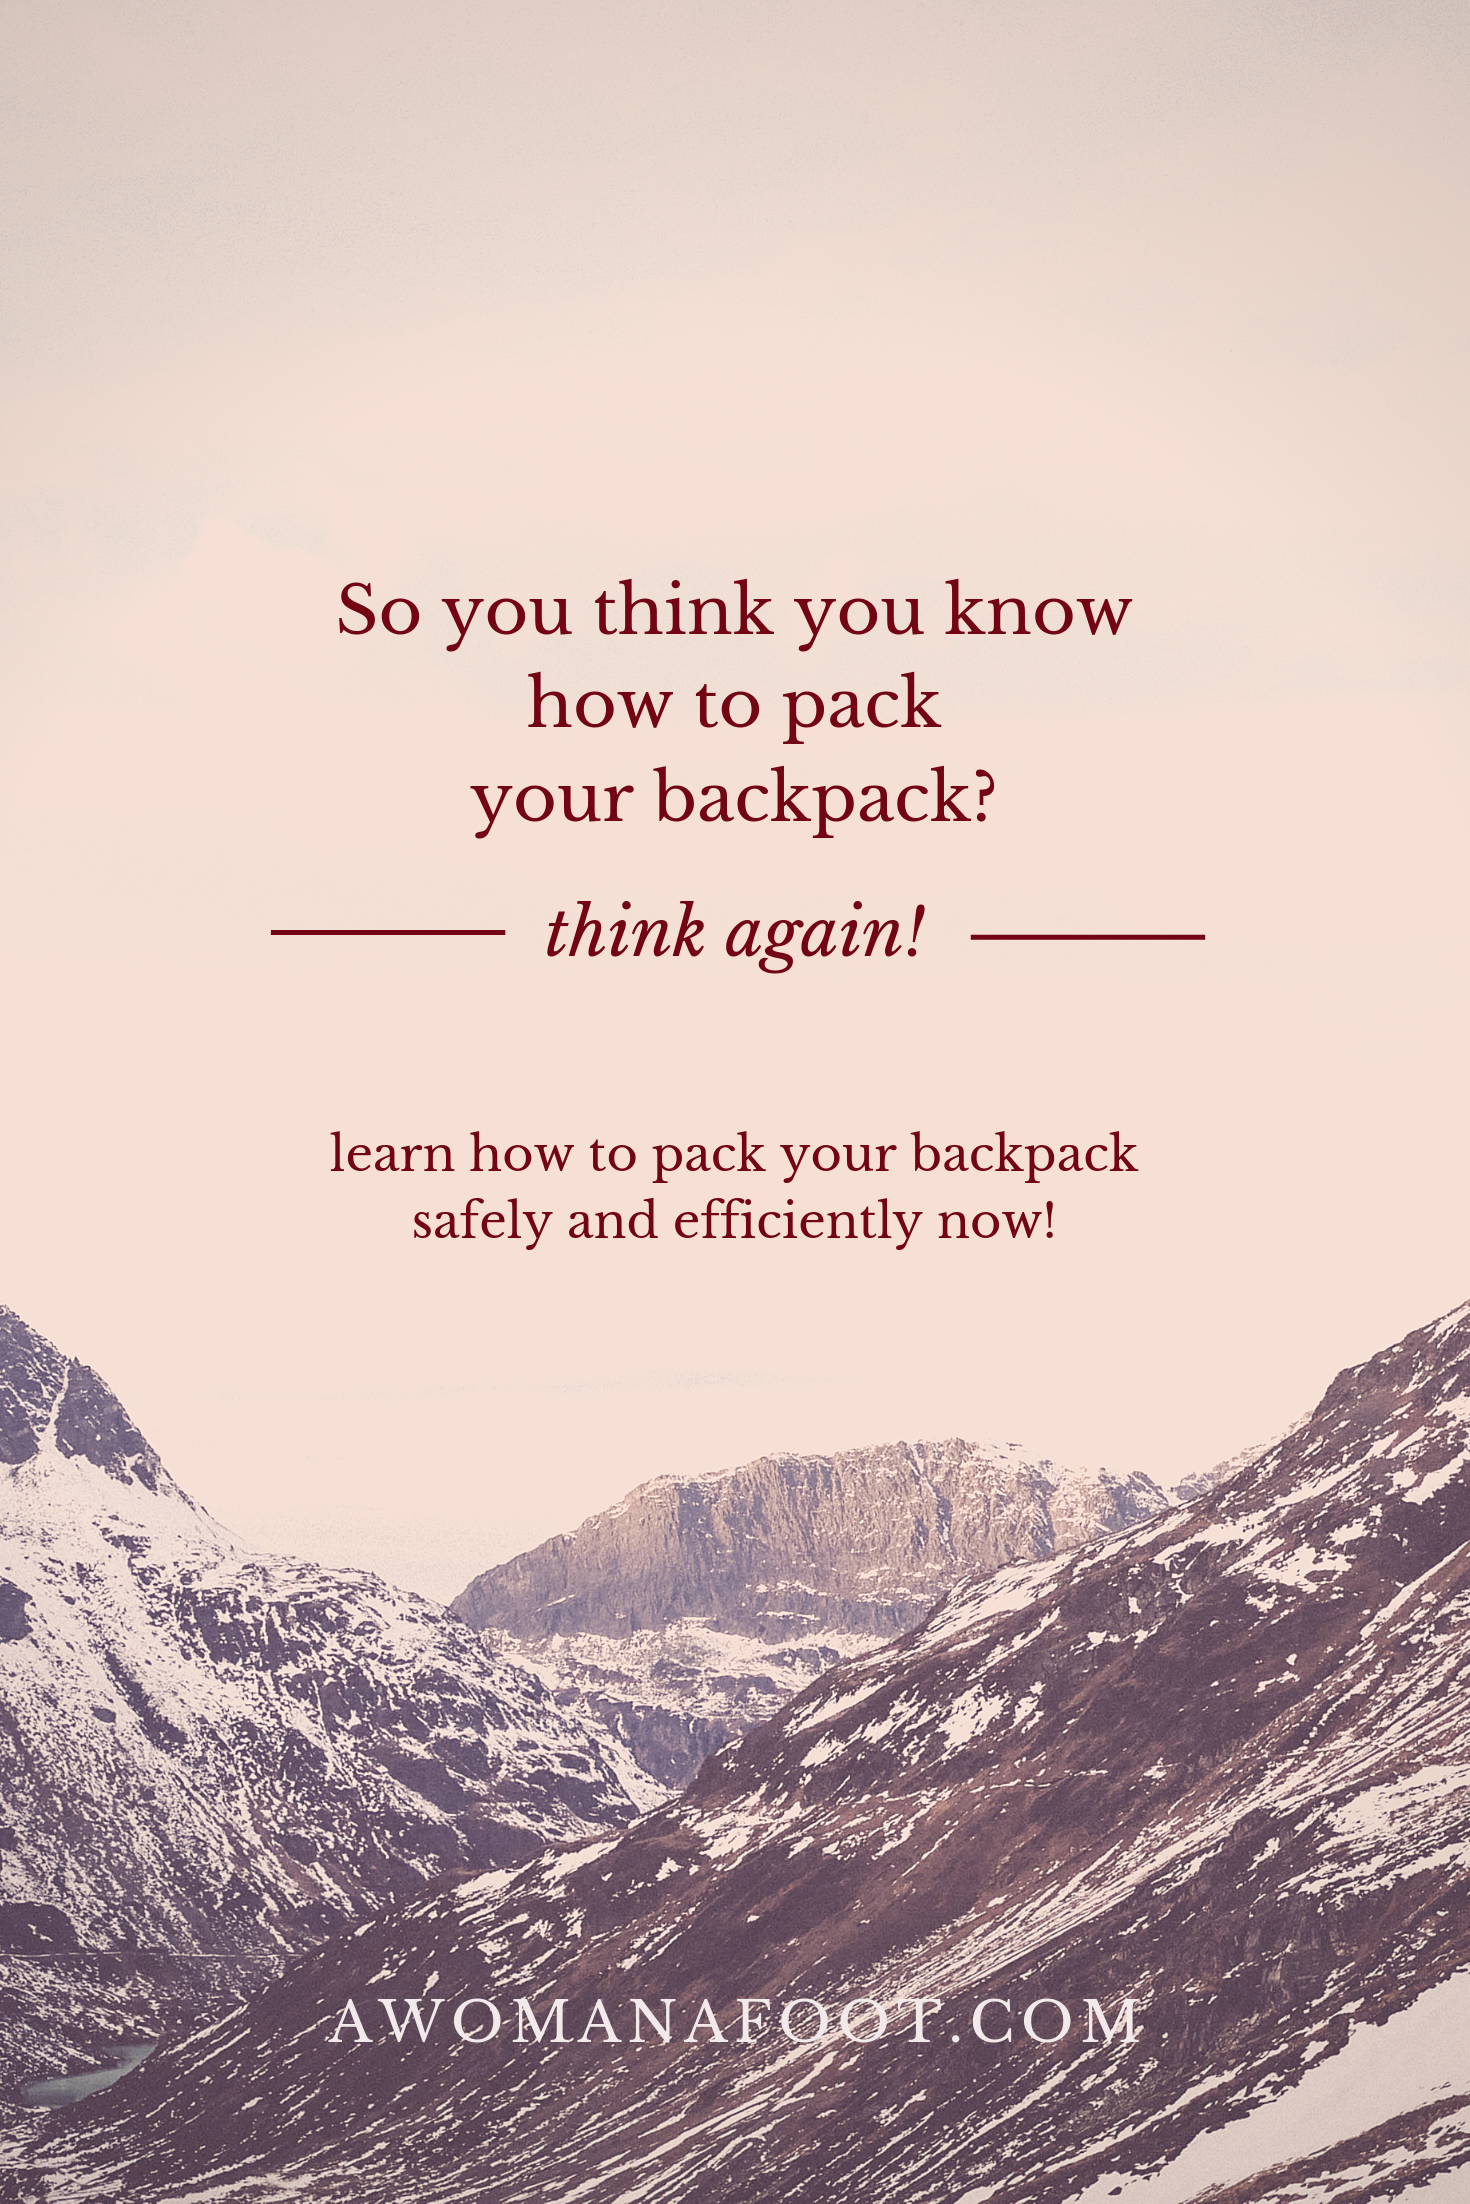 How to pack your hiking backpack to ensure comfort and safety. Learn all you need about packing your load to ensure your comfort @ awomanafoot.com | #hiking | #backpacking | #camping | #hikingtips | backpack packing | #hiking101 | hiking tips | #HikingAdvice #trekking